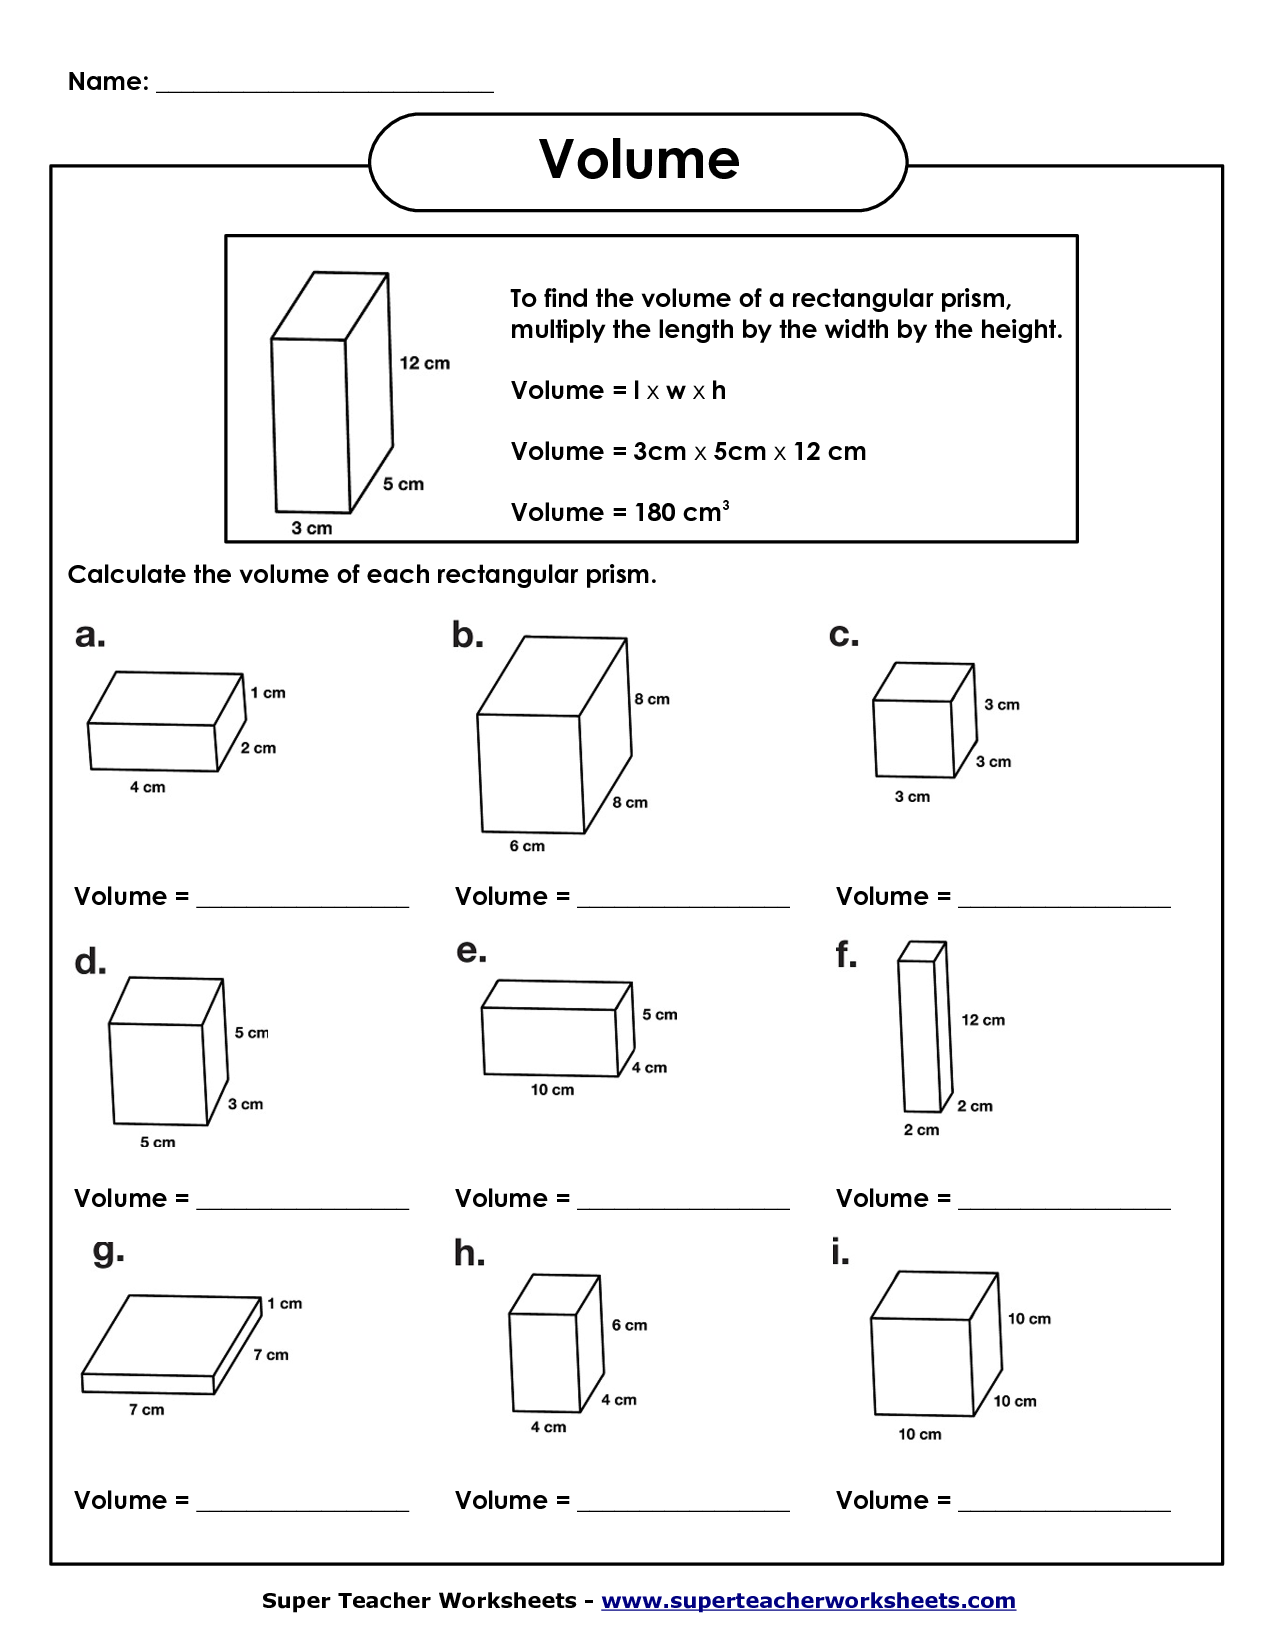 Uncategorized Surface Area Of Rectangular Prism Worksheet volume of rectangular prism worksheet worksheets math worksheets